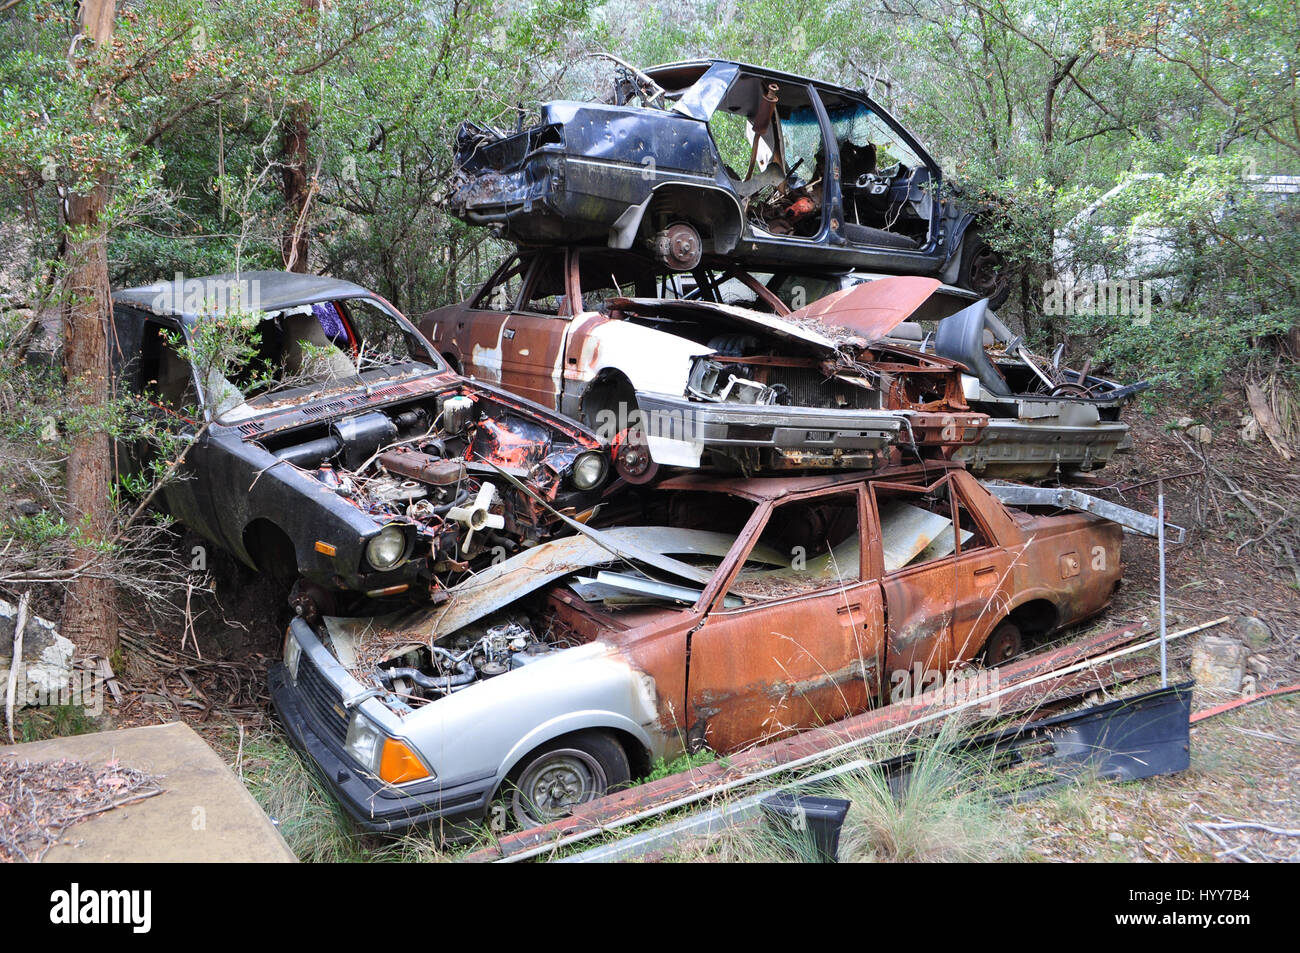 DERWENT VALLEY, AUSTRALIA: LIKE A scene from the post-apocalyptic world in Mad Max these rusting vehicles have been - Stock Image